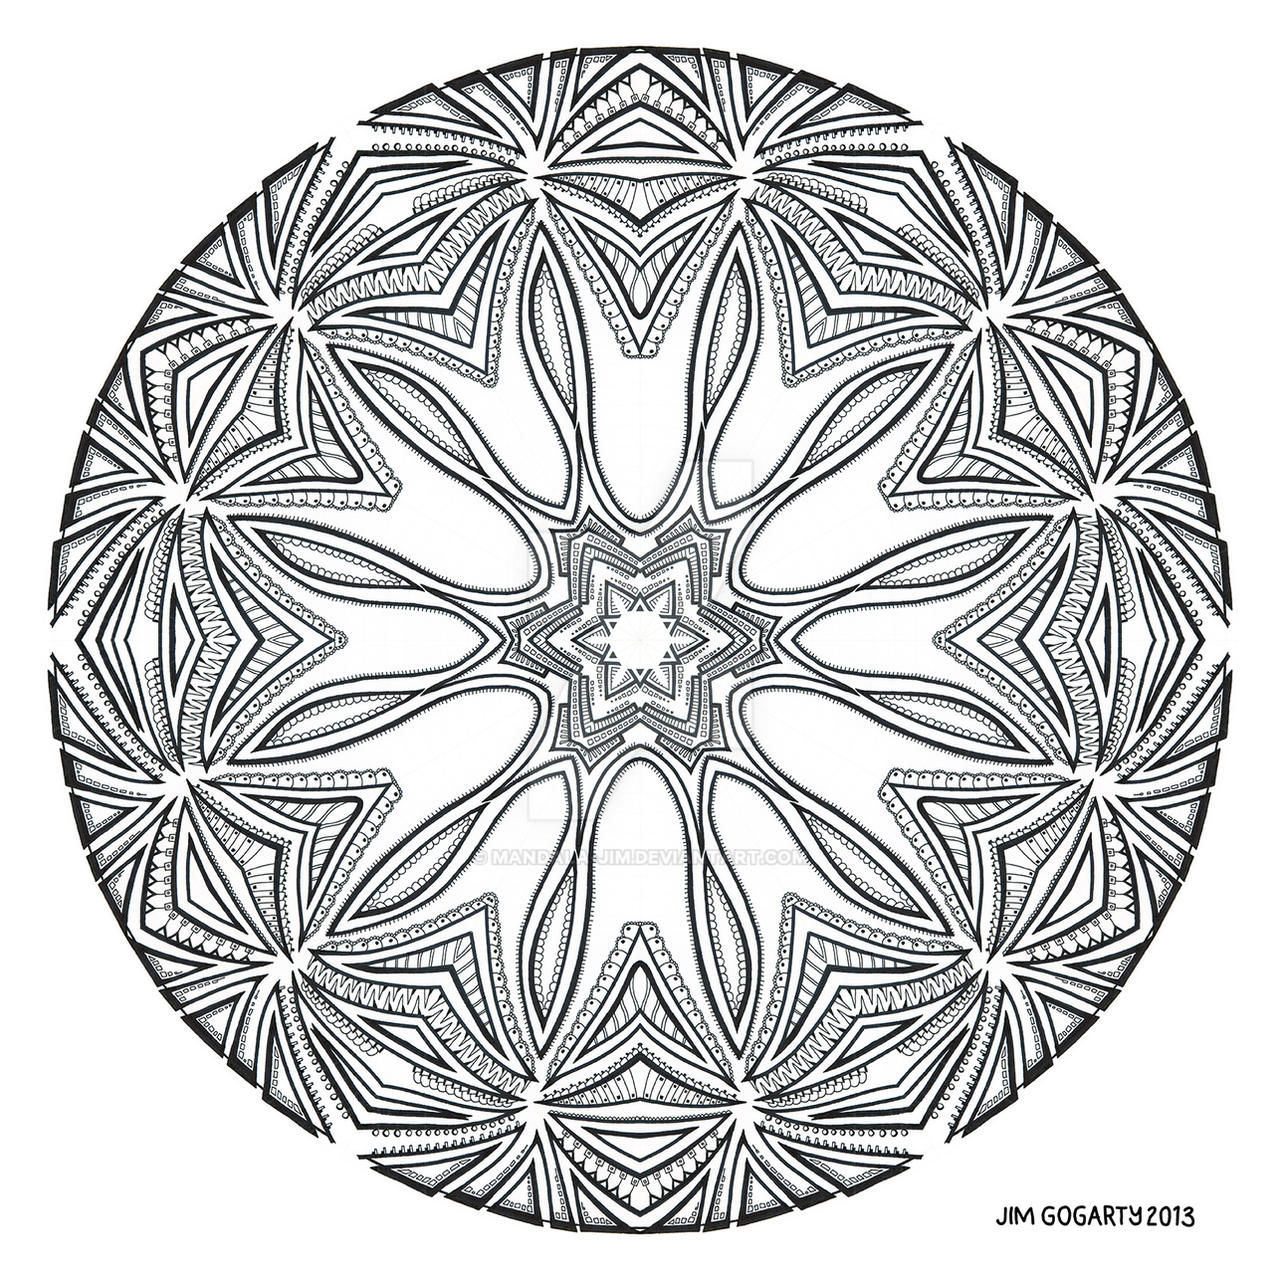 The mandala coloring book jim gogarty -  Molecule 71 By Mandala Jim